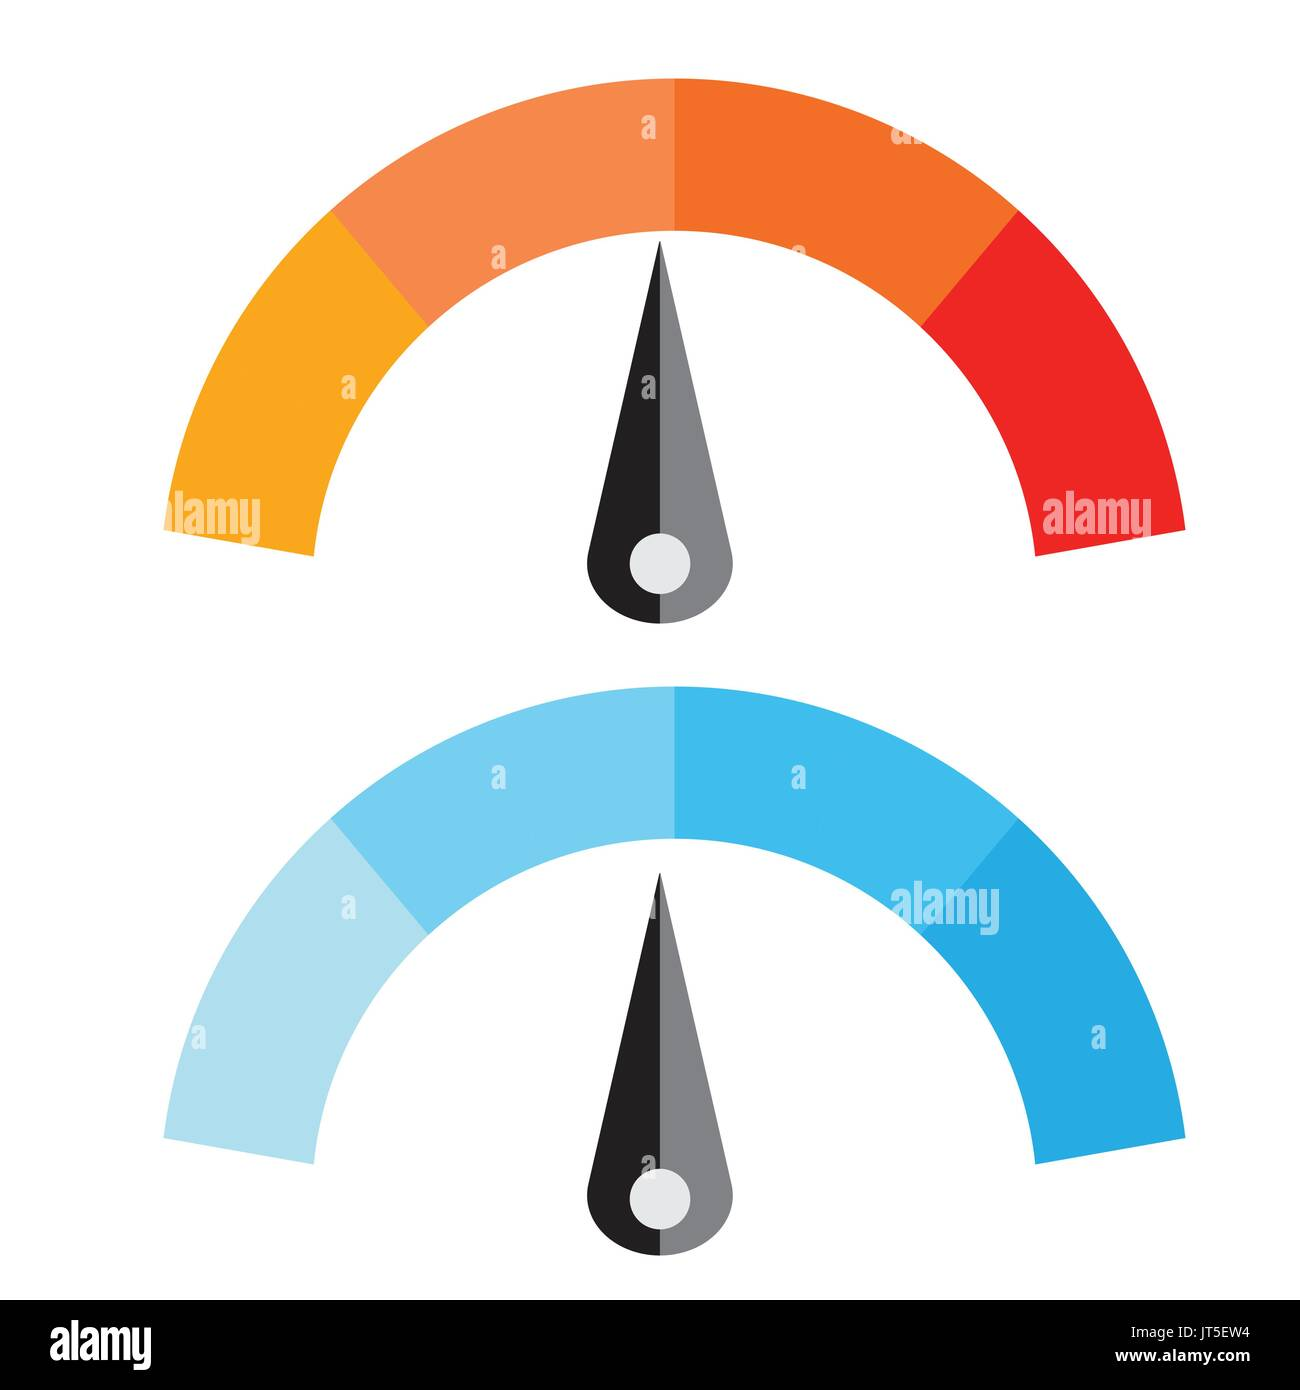 Vector Illustration of Temperature Meter with warm and cool levels, flat style, EPS10. - Stock Image